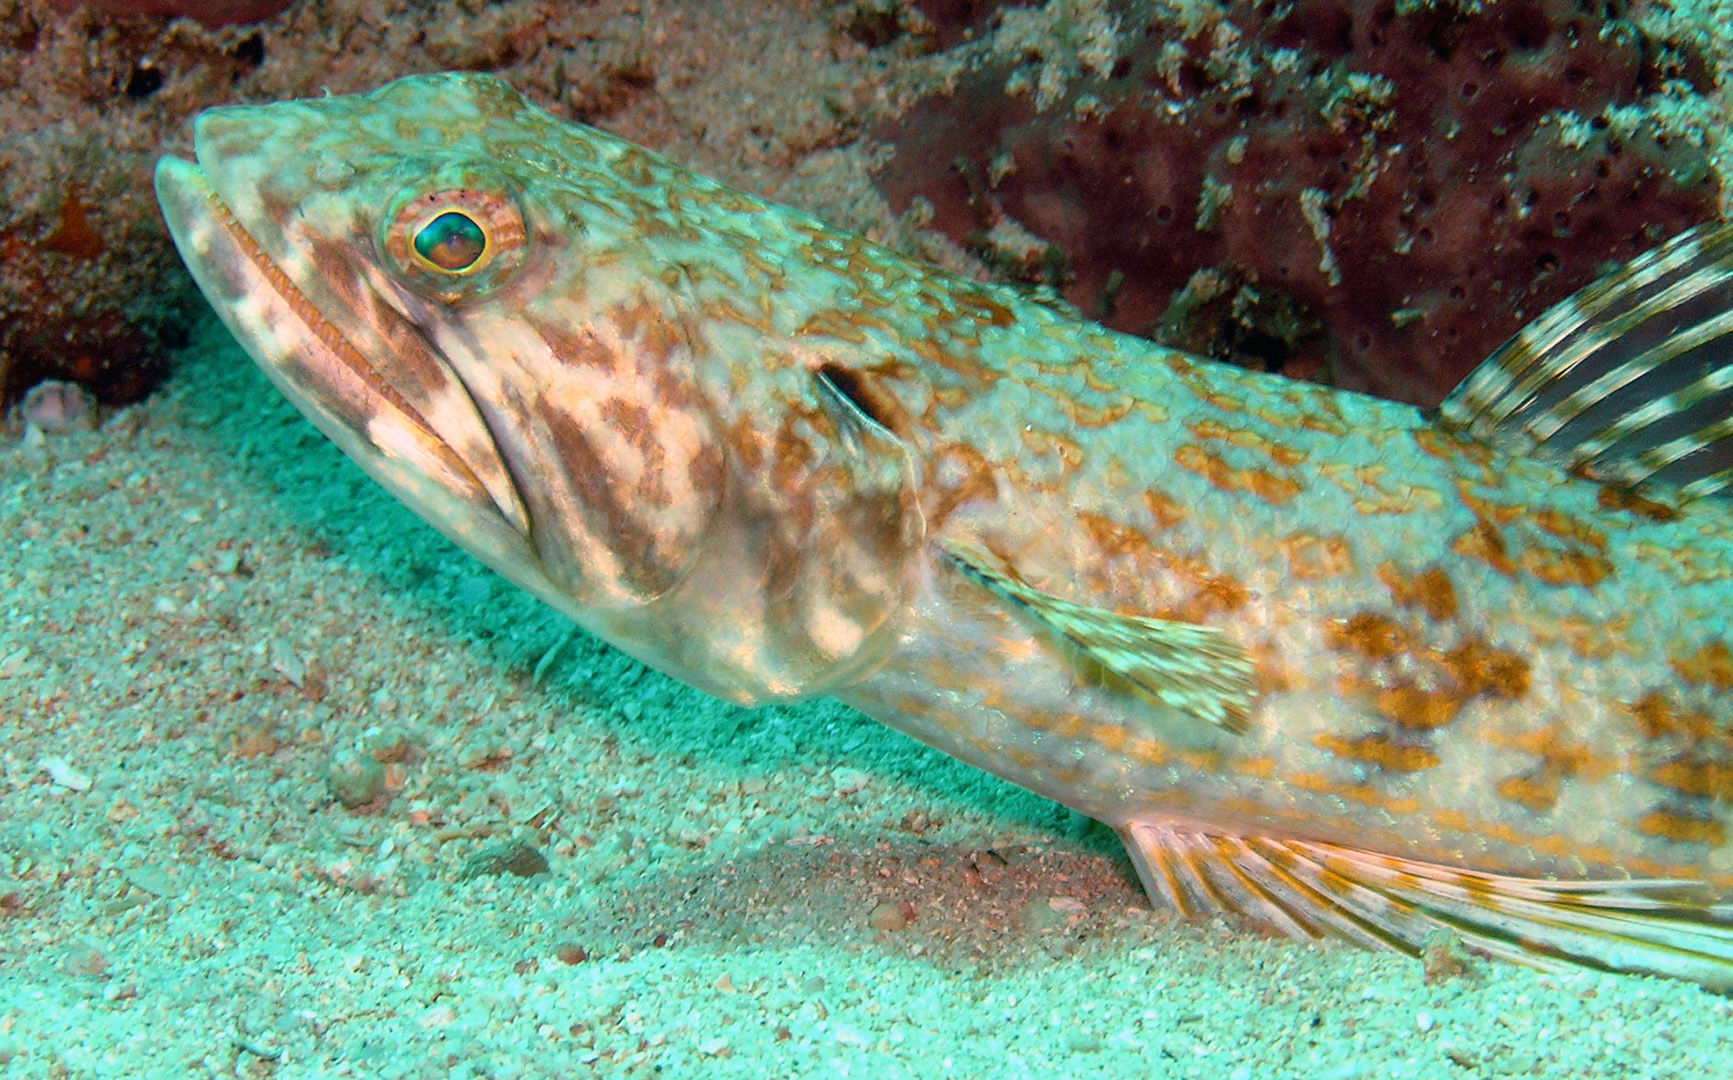 Lizard fish are among the many interesting residents you will see on the reefs in Guadeloupe